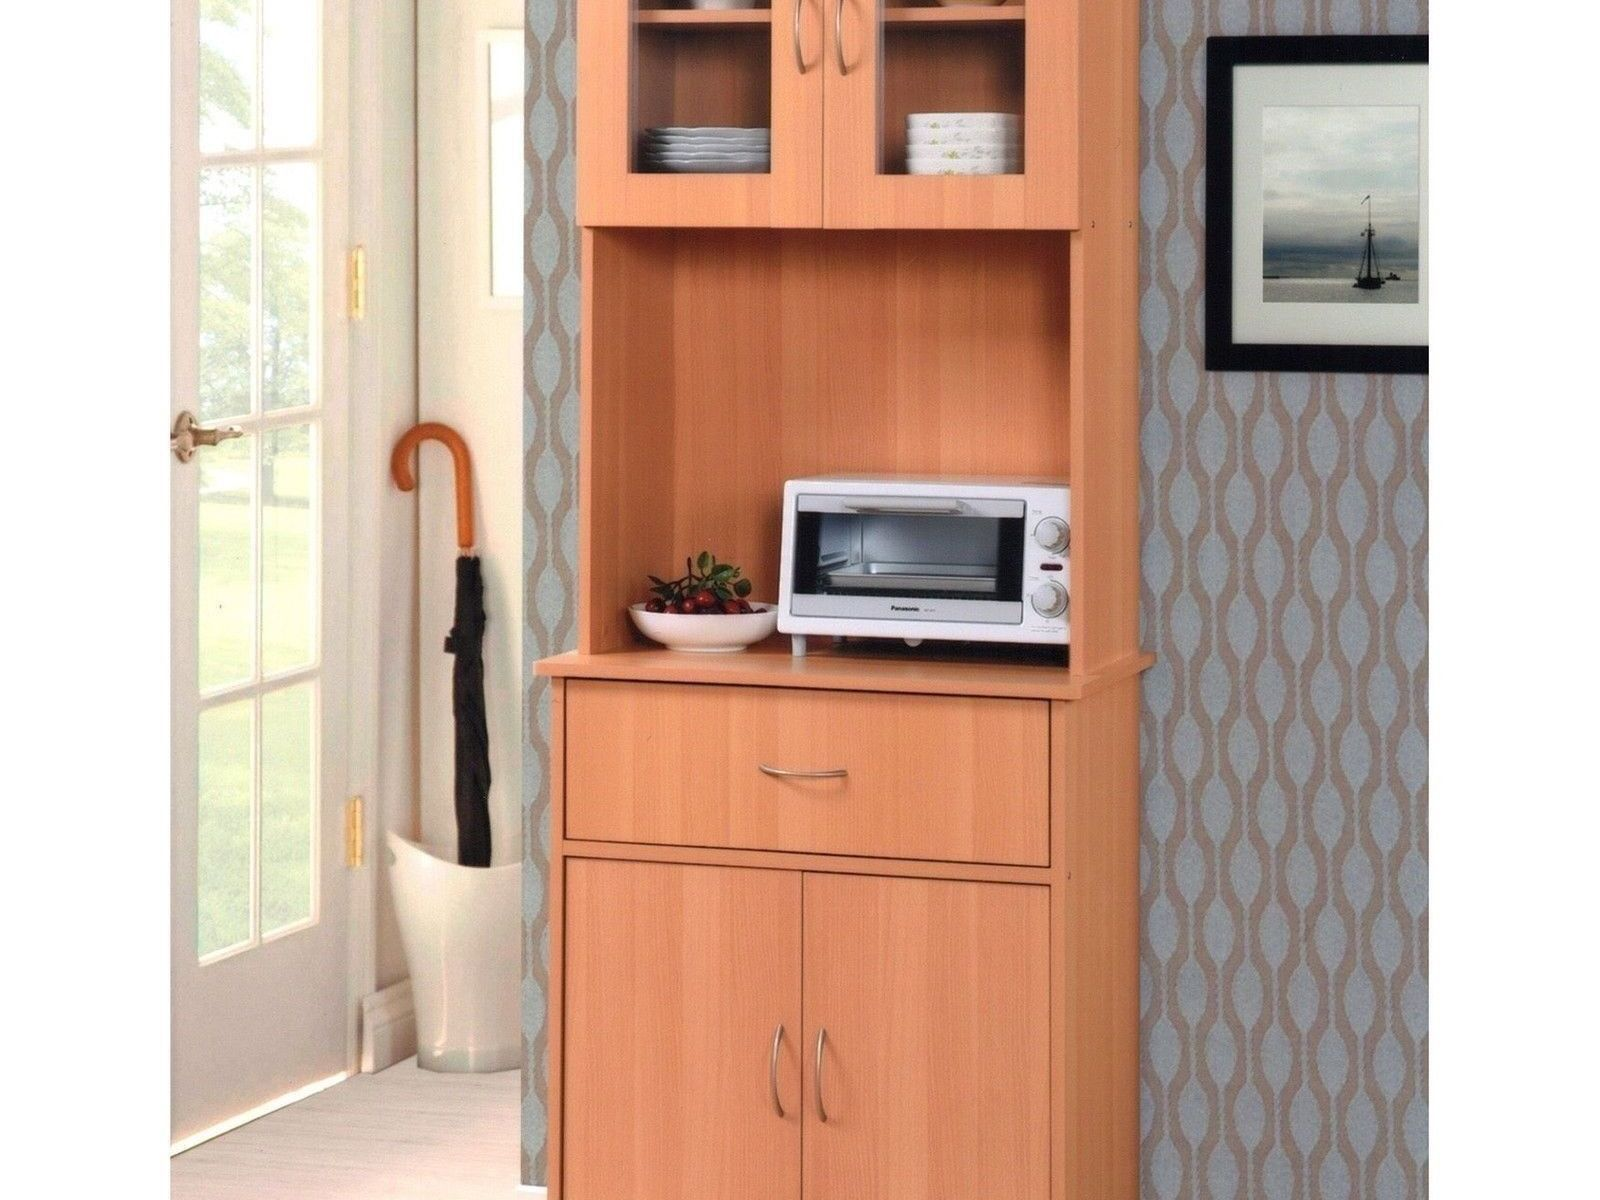 new tall kitchen microwave stand beech